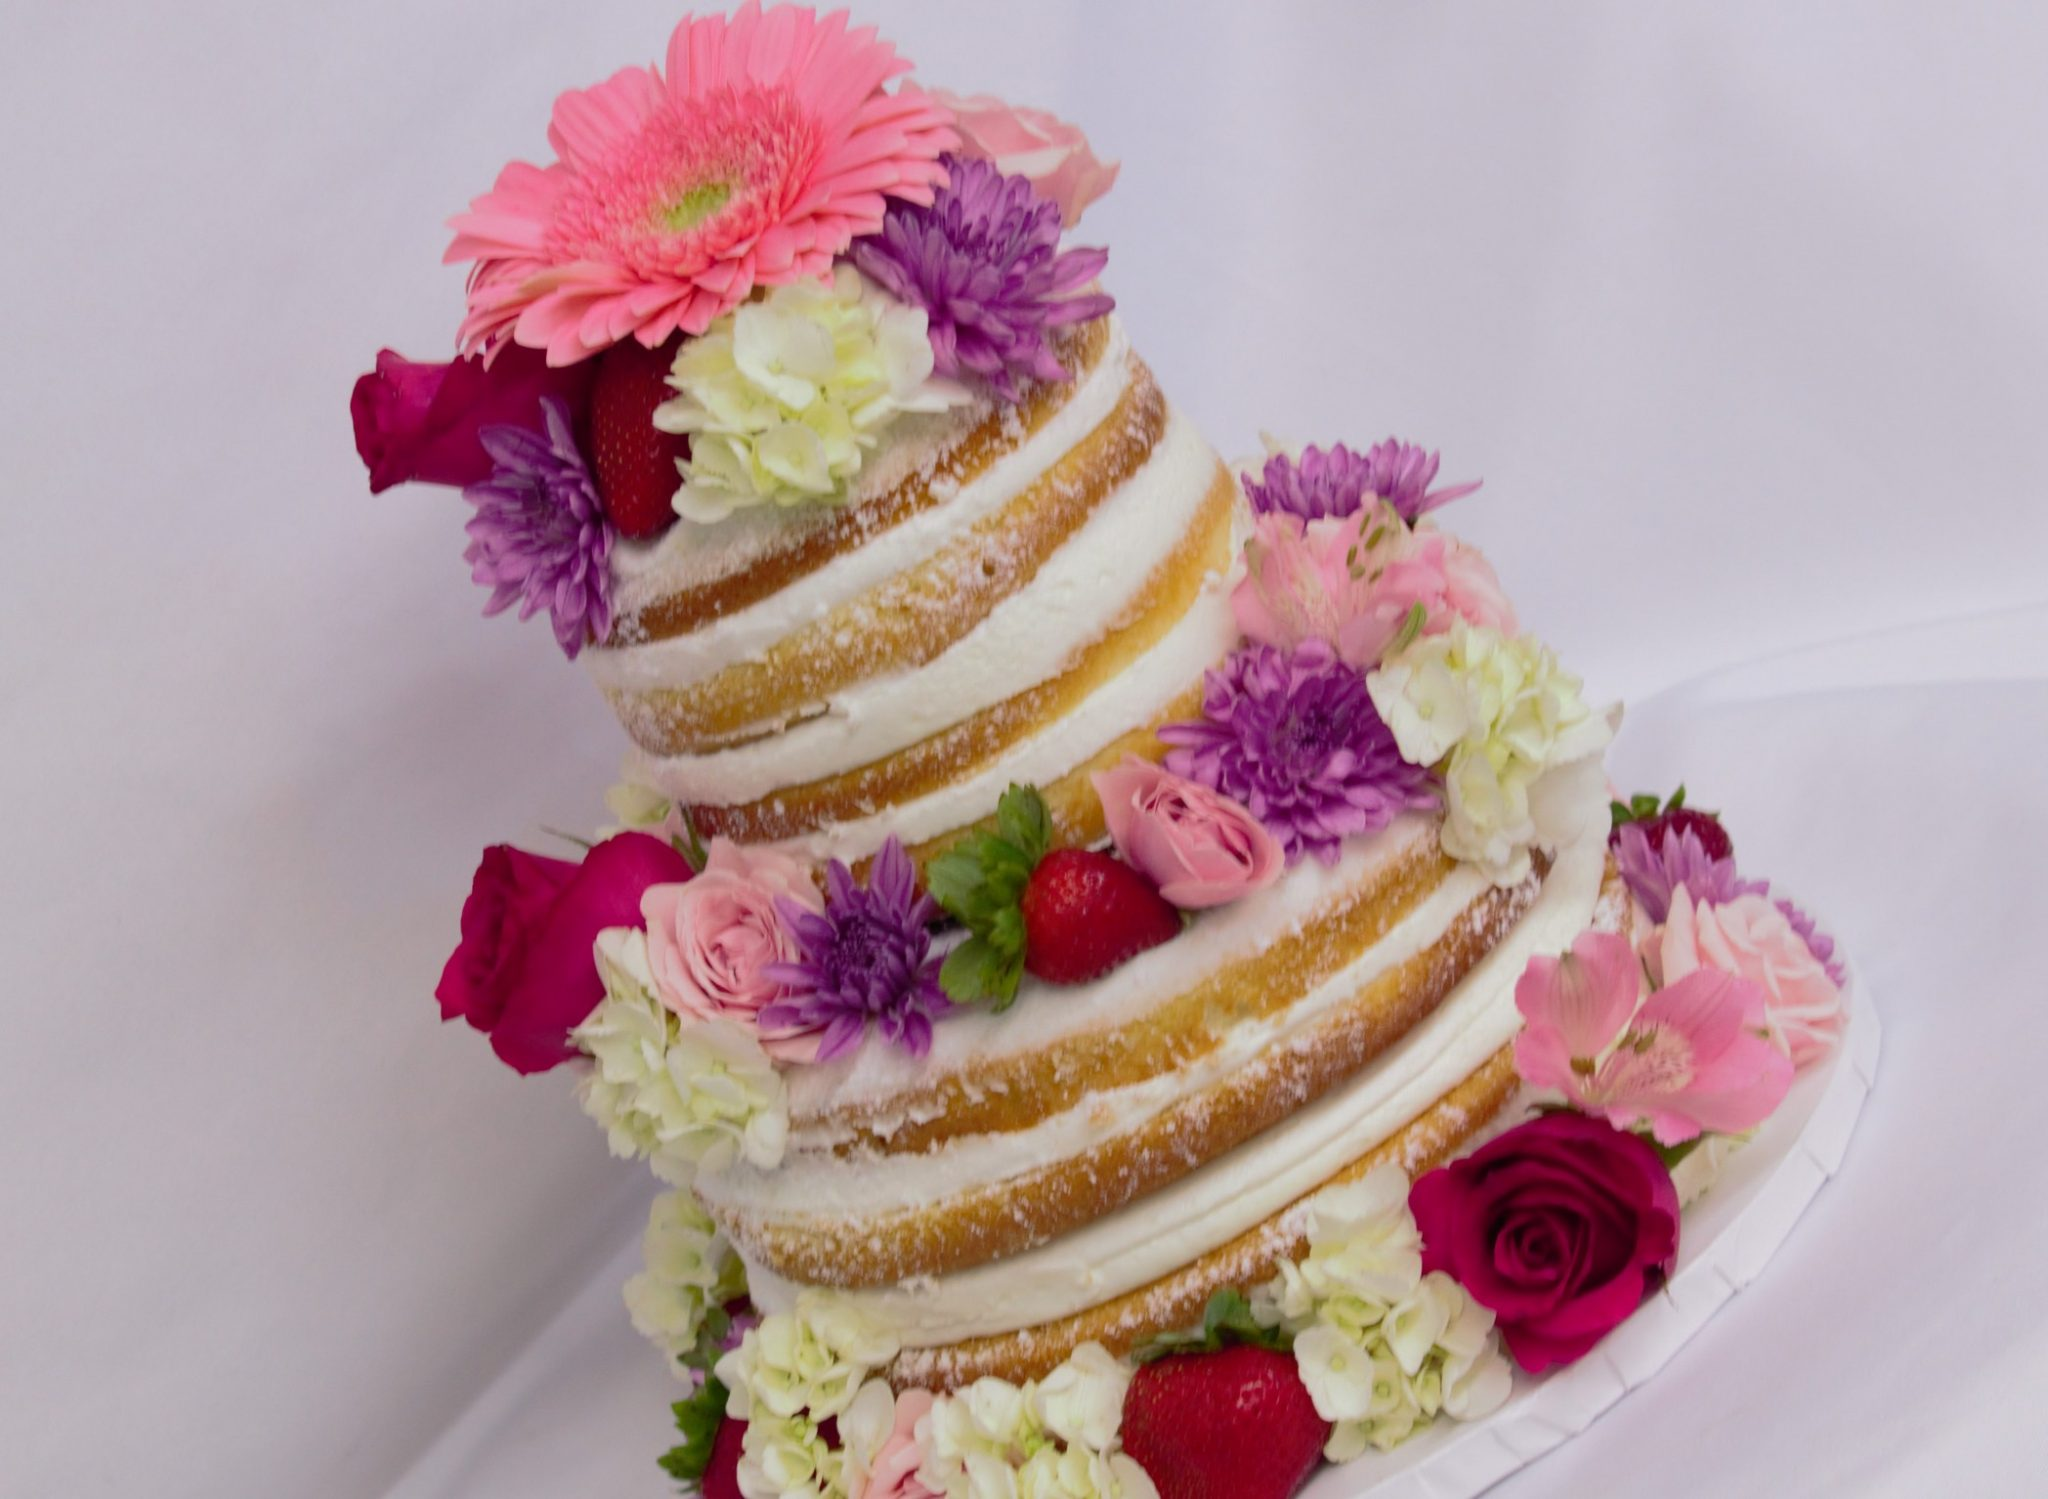 Naked Cake With Flowers A Trendy Cake From Cinottis Bakery